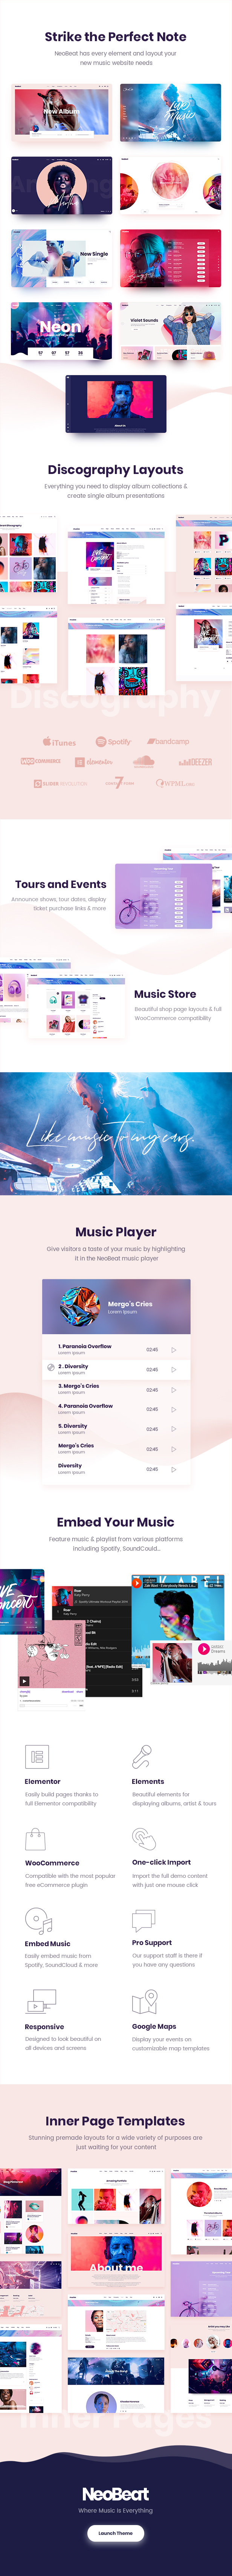 NeoBeat - Music WordPress Theme - 1